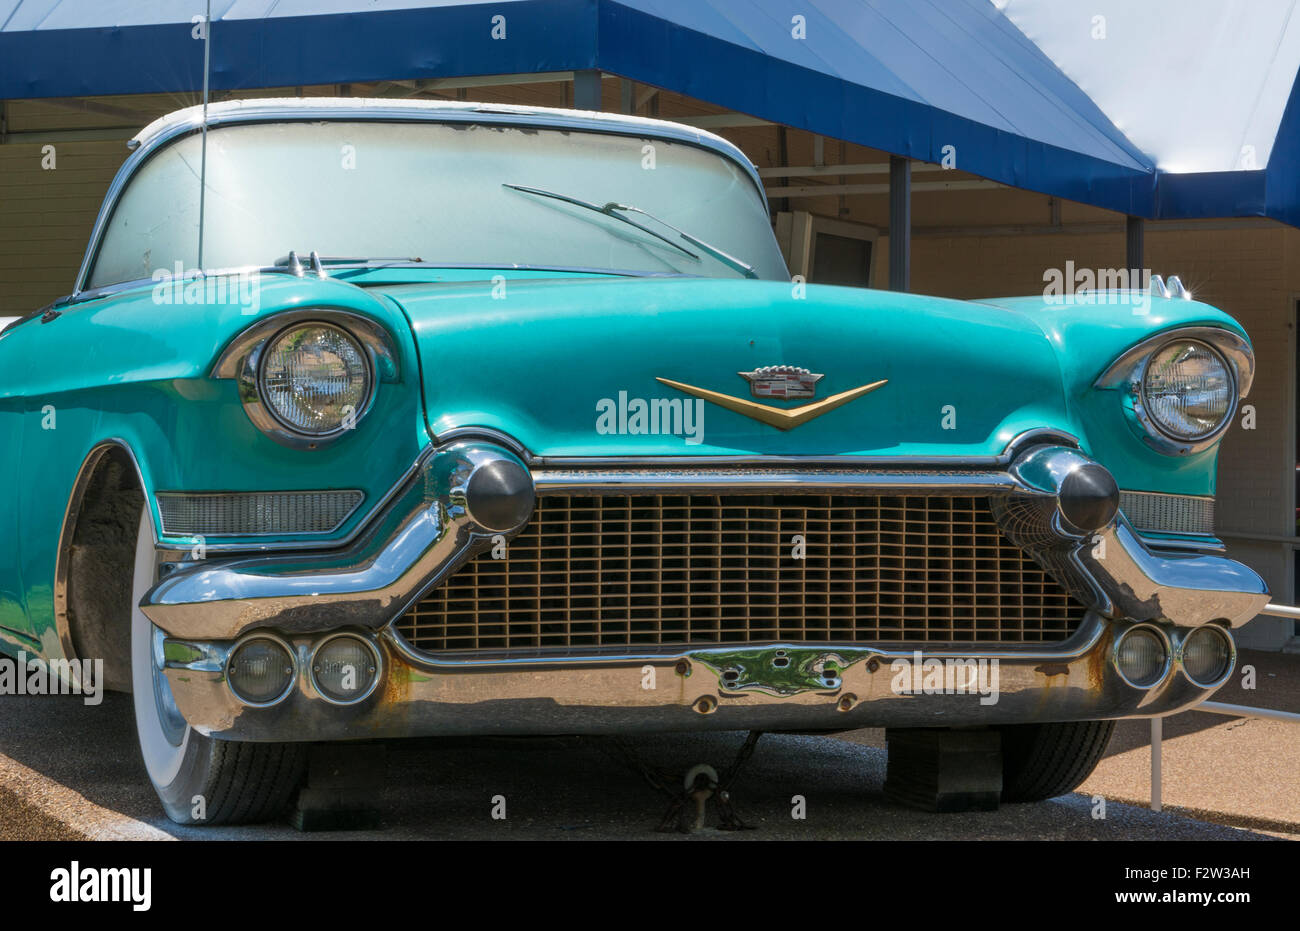 Cadillac Of Memphis >> Memphis Tennessee Blue Cadillac Of Elvis Presley At